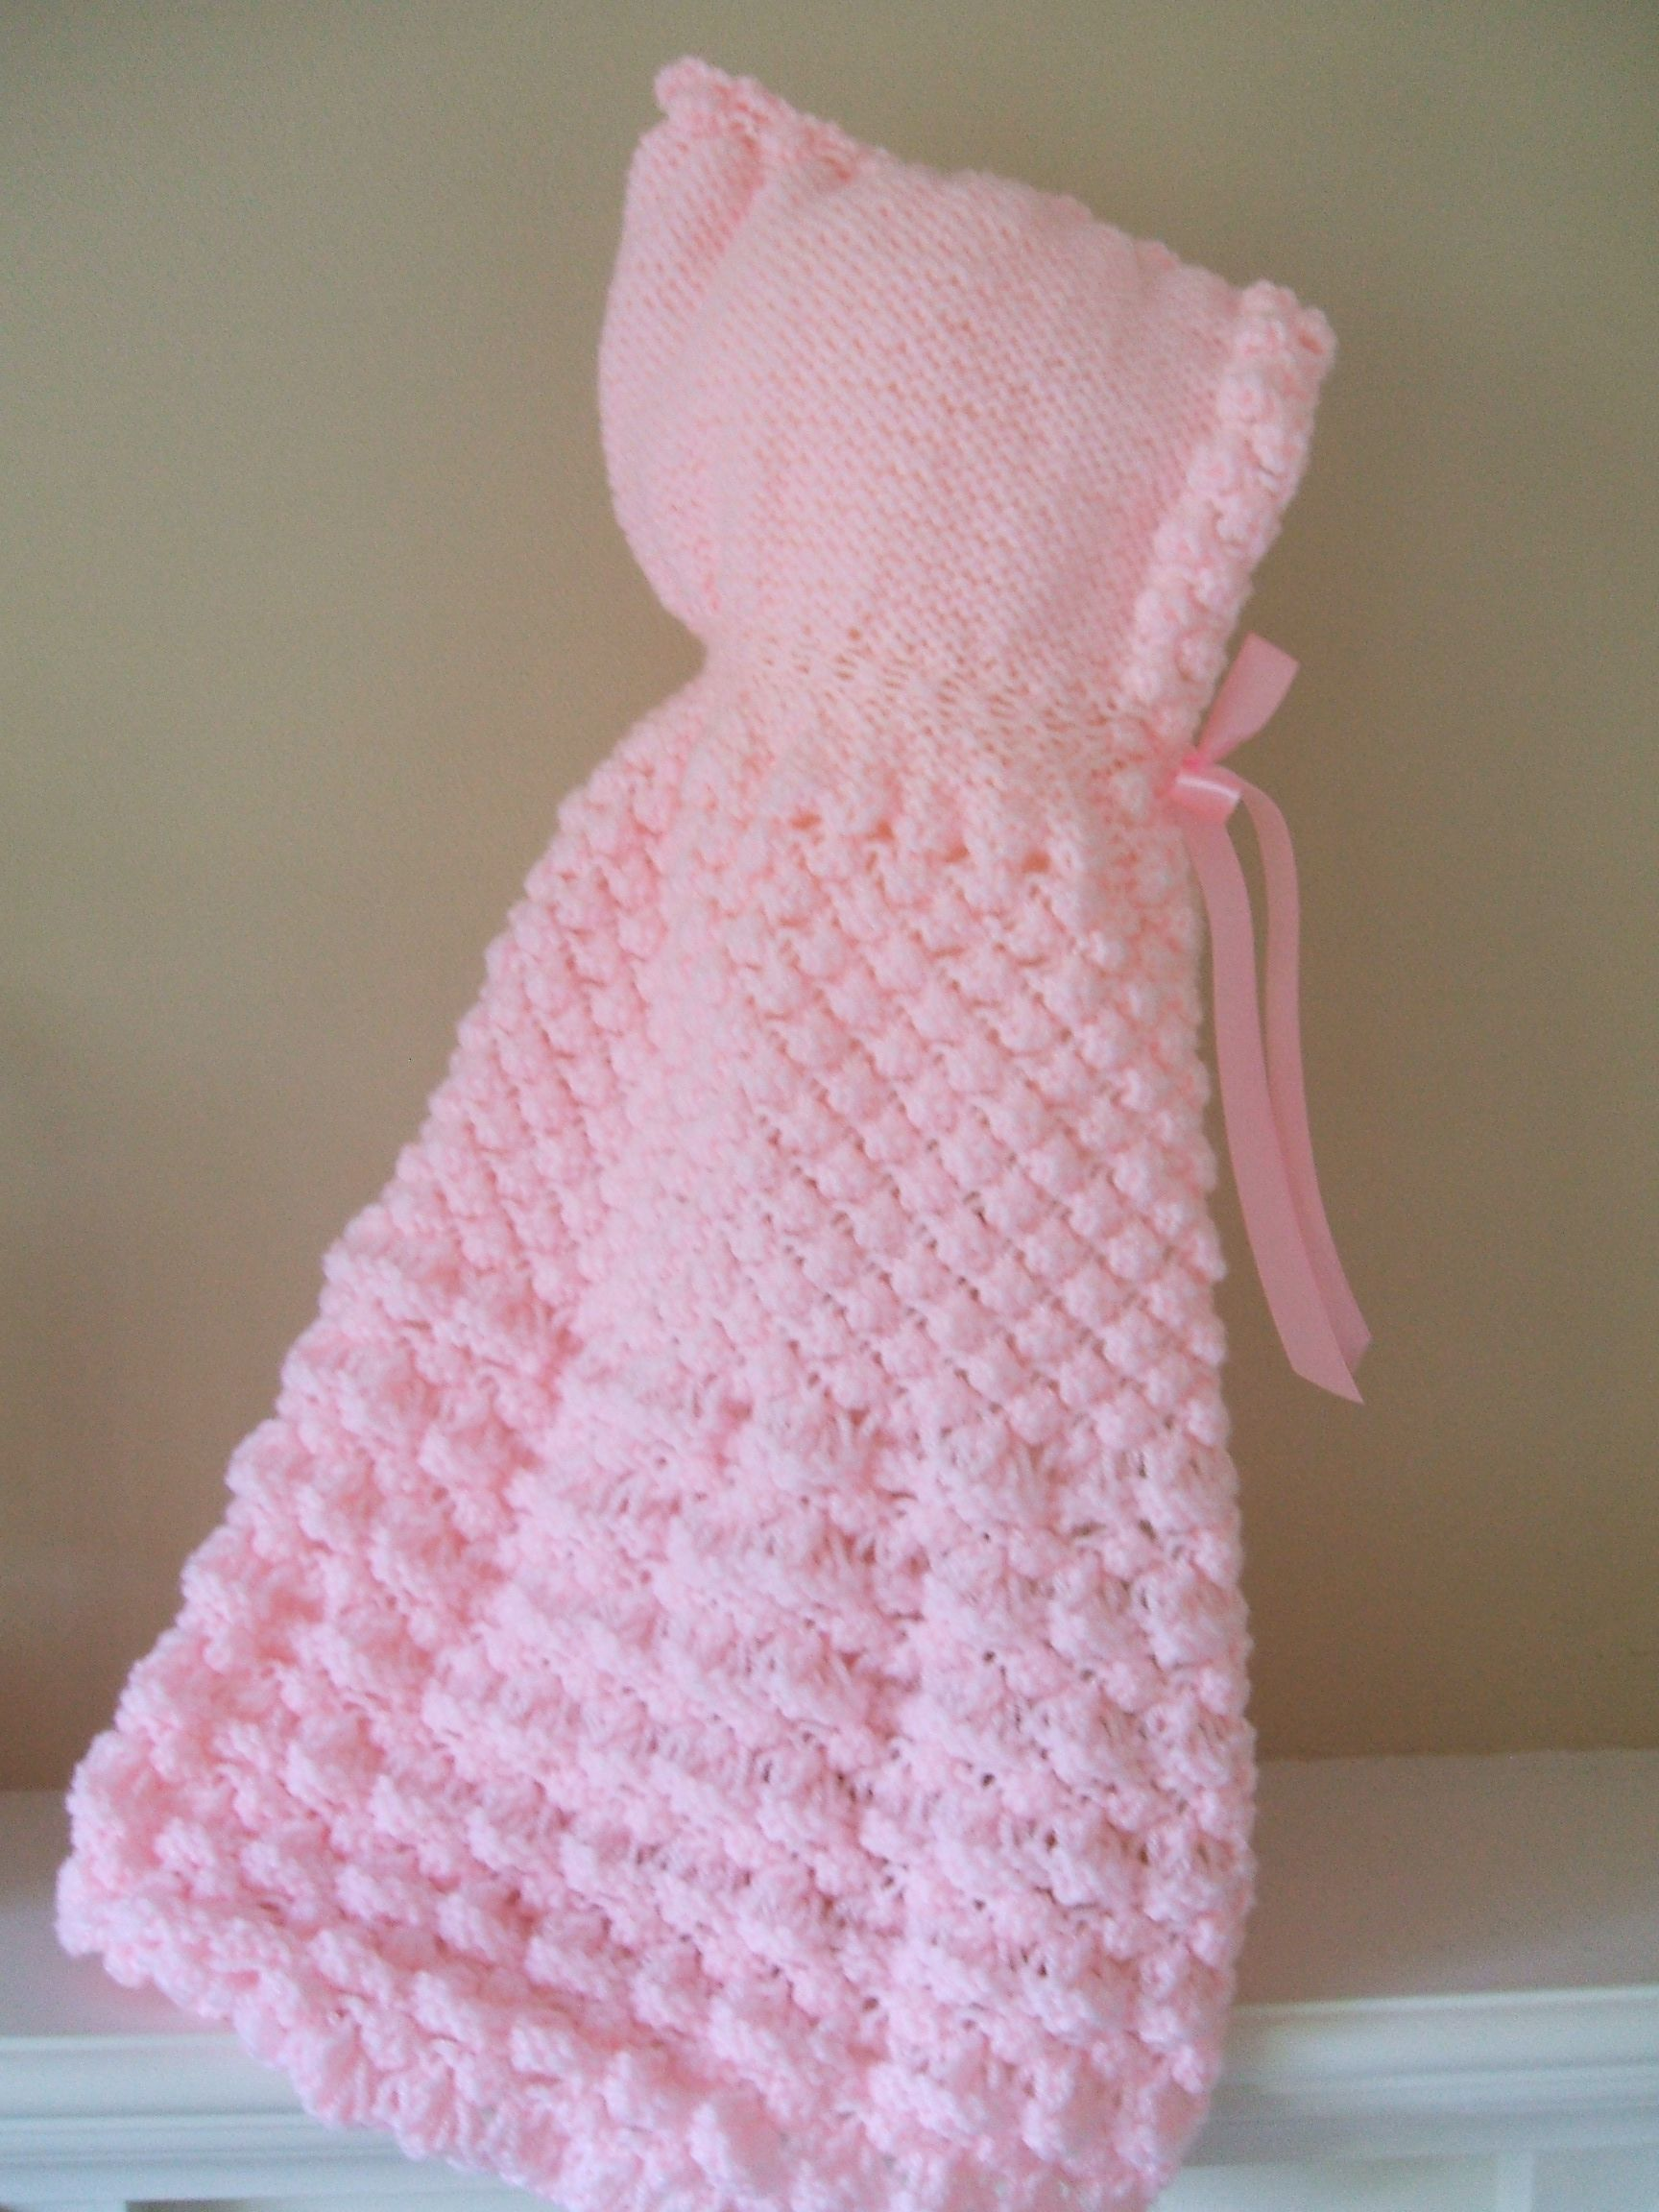 HOODED CAPE FOR NEW BABY knitting pattern http://www.craftsy.com ...